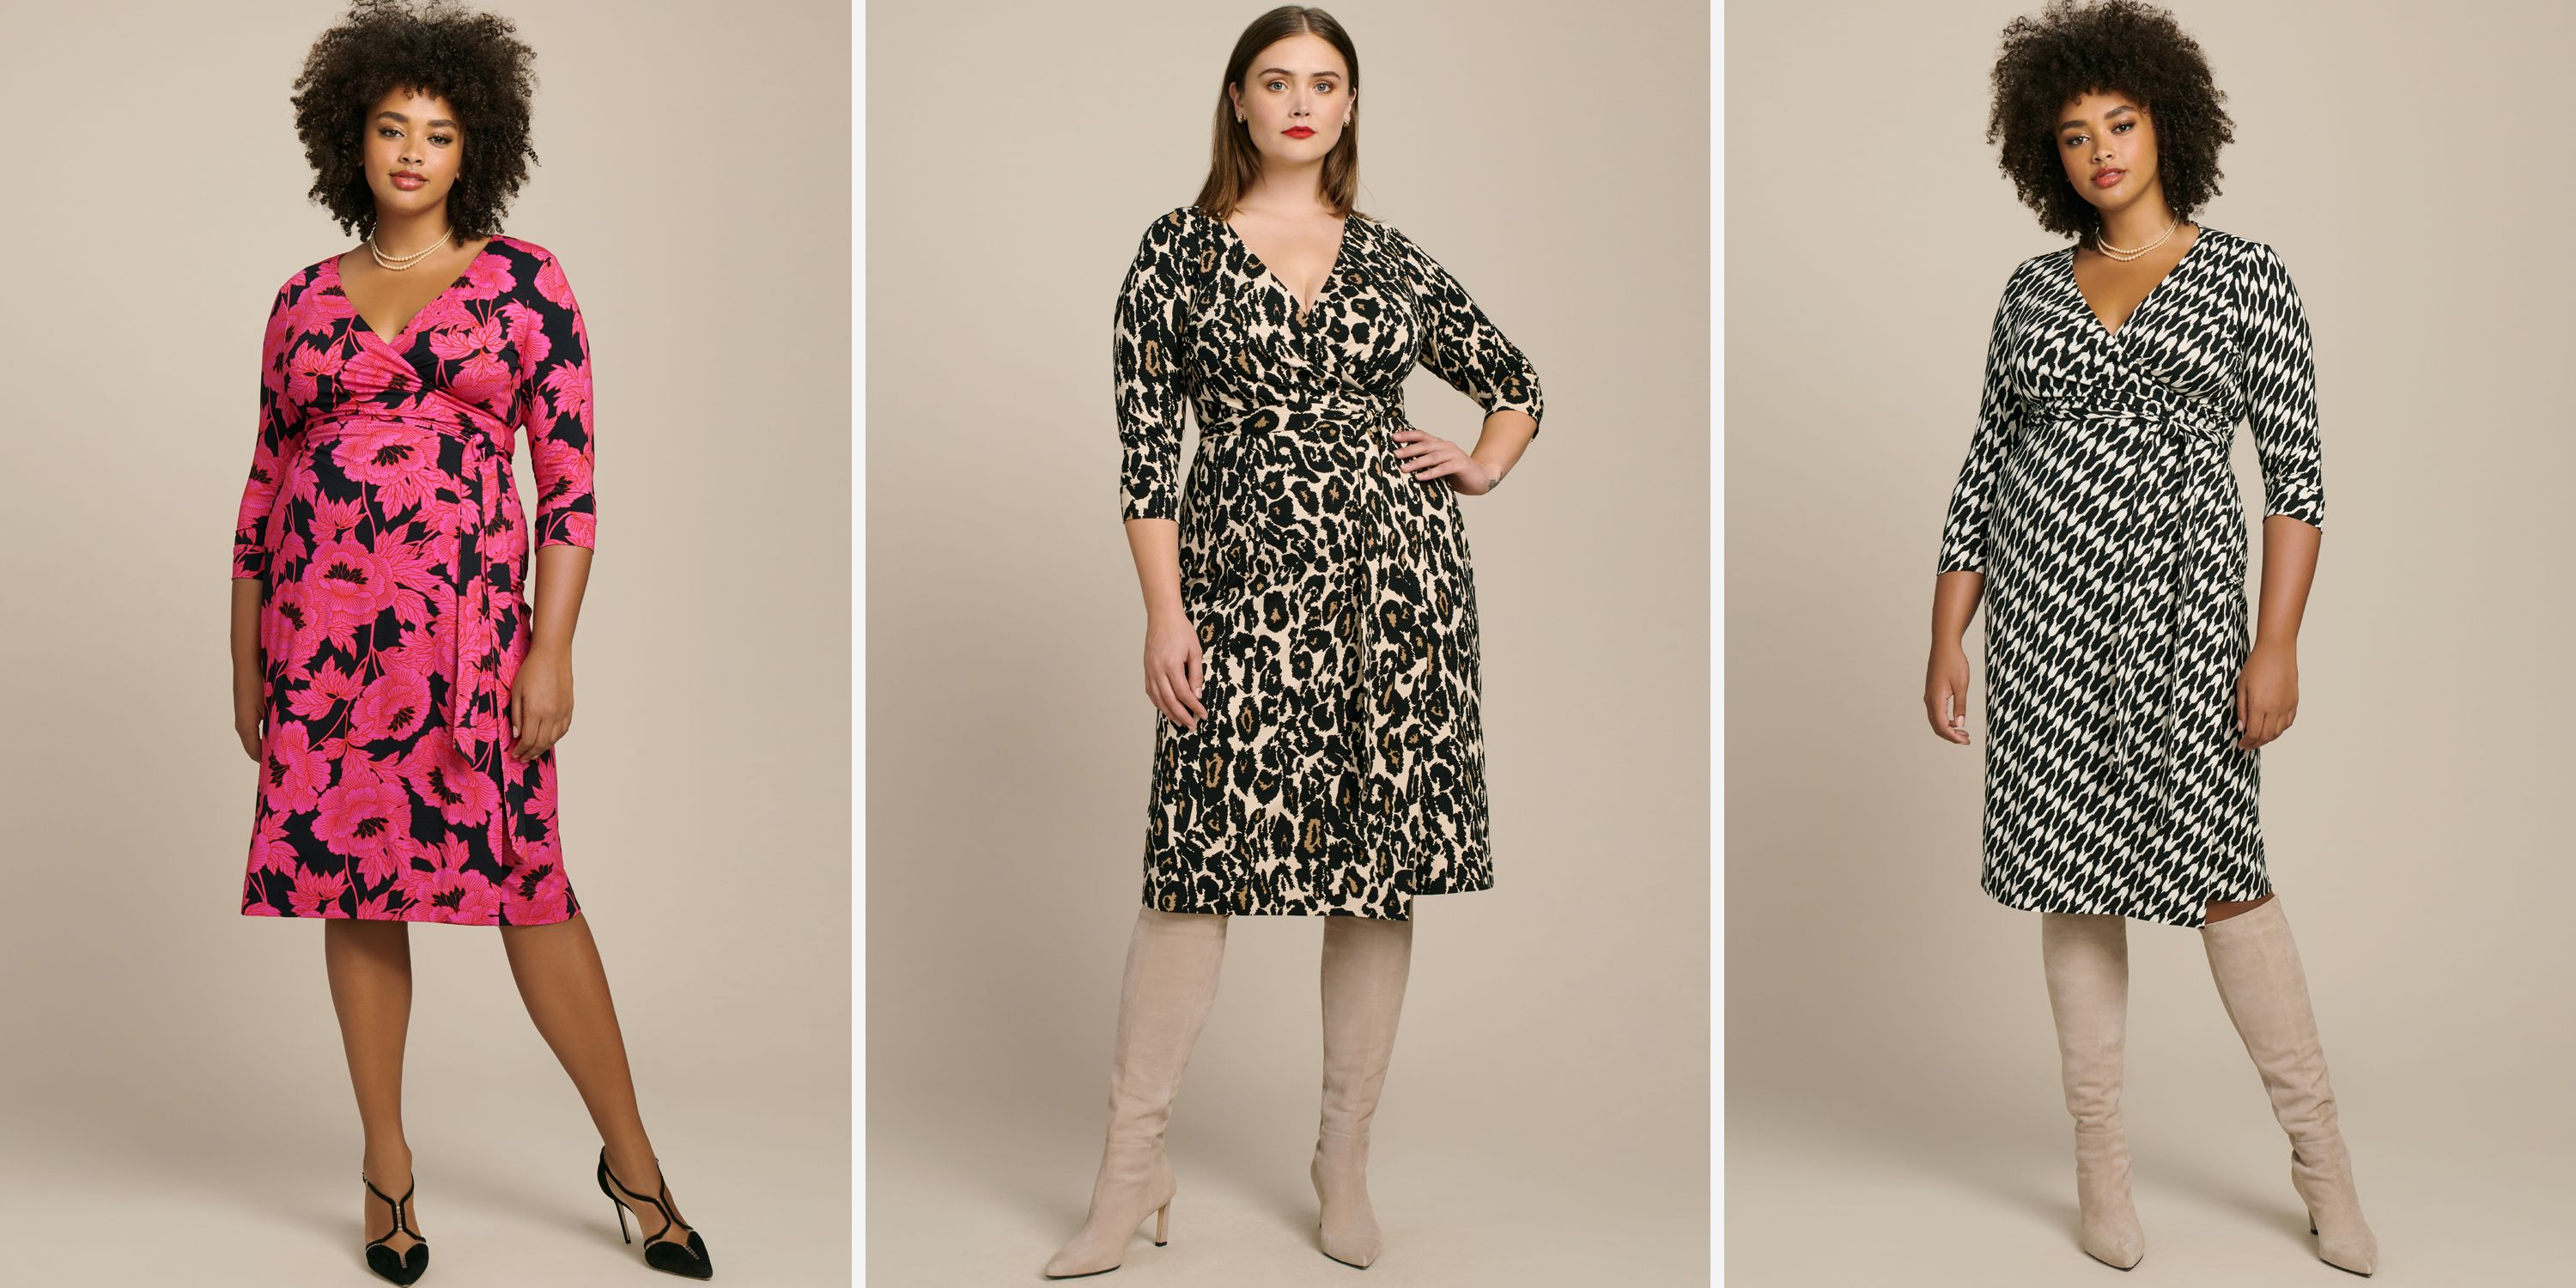 11 Honoré to Launch Plus-Sized Diane von Furstenberg Dresses